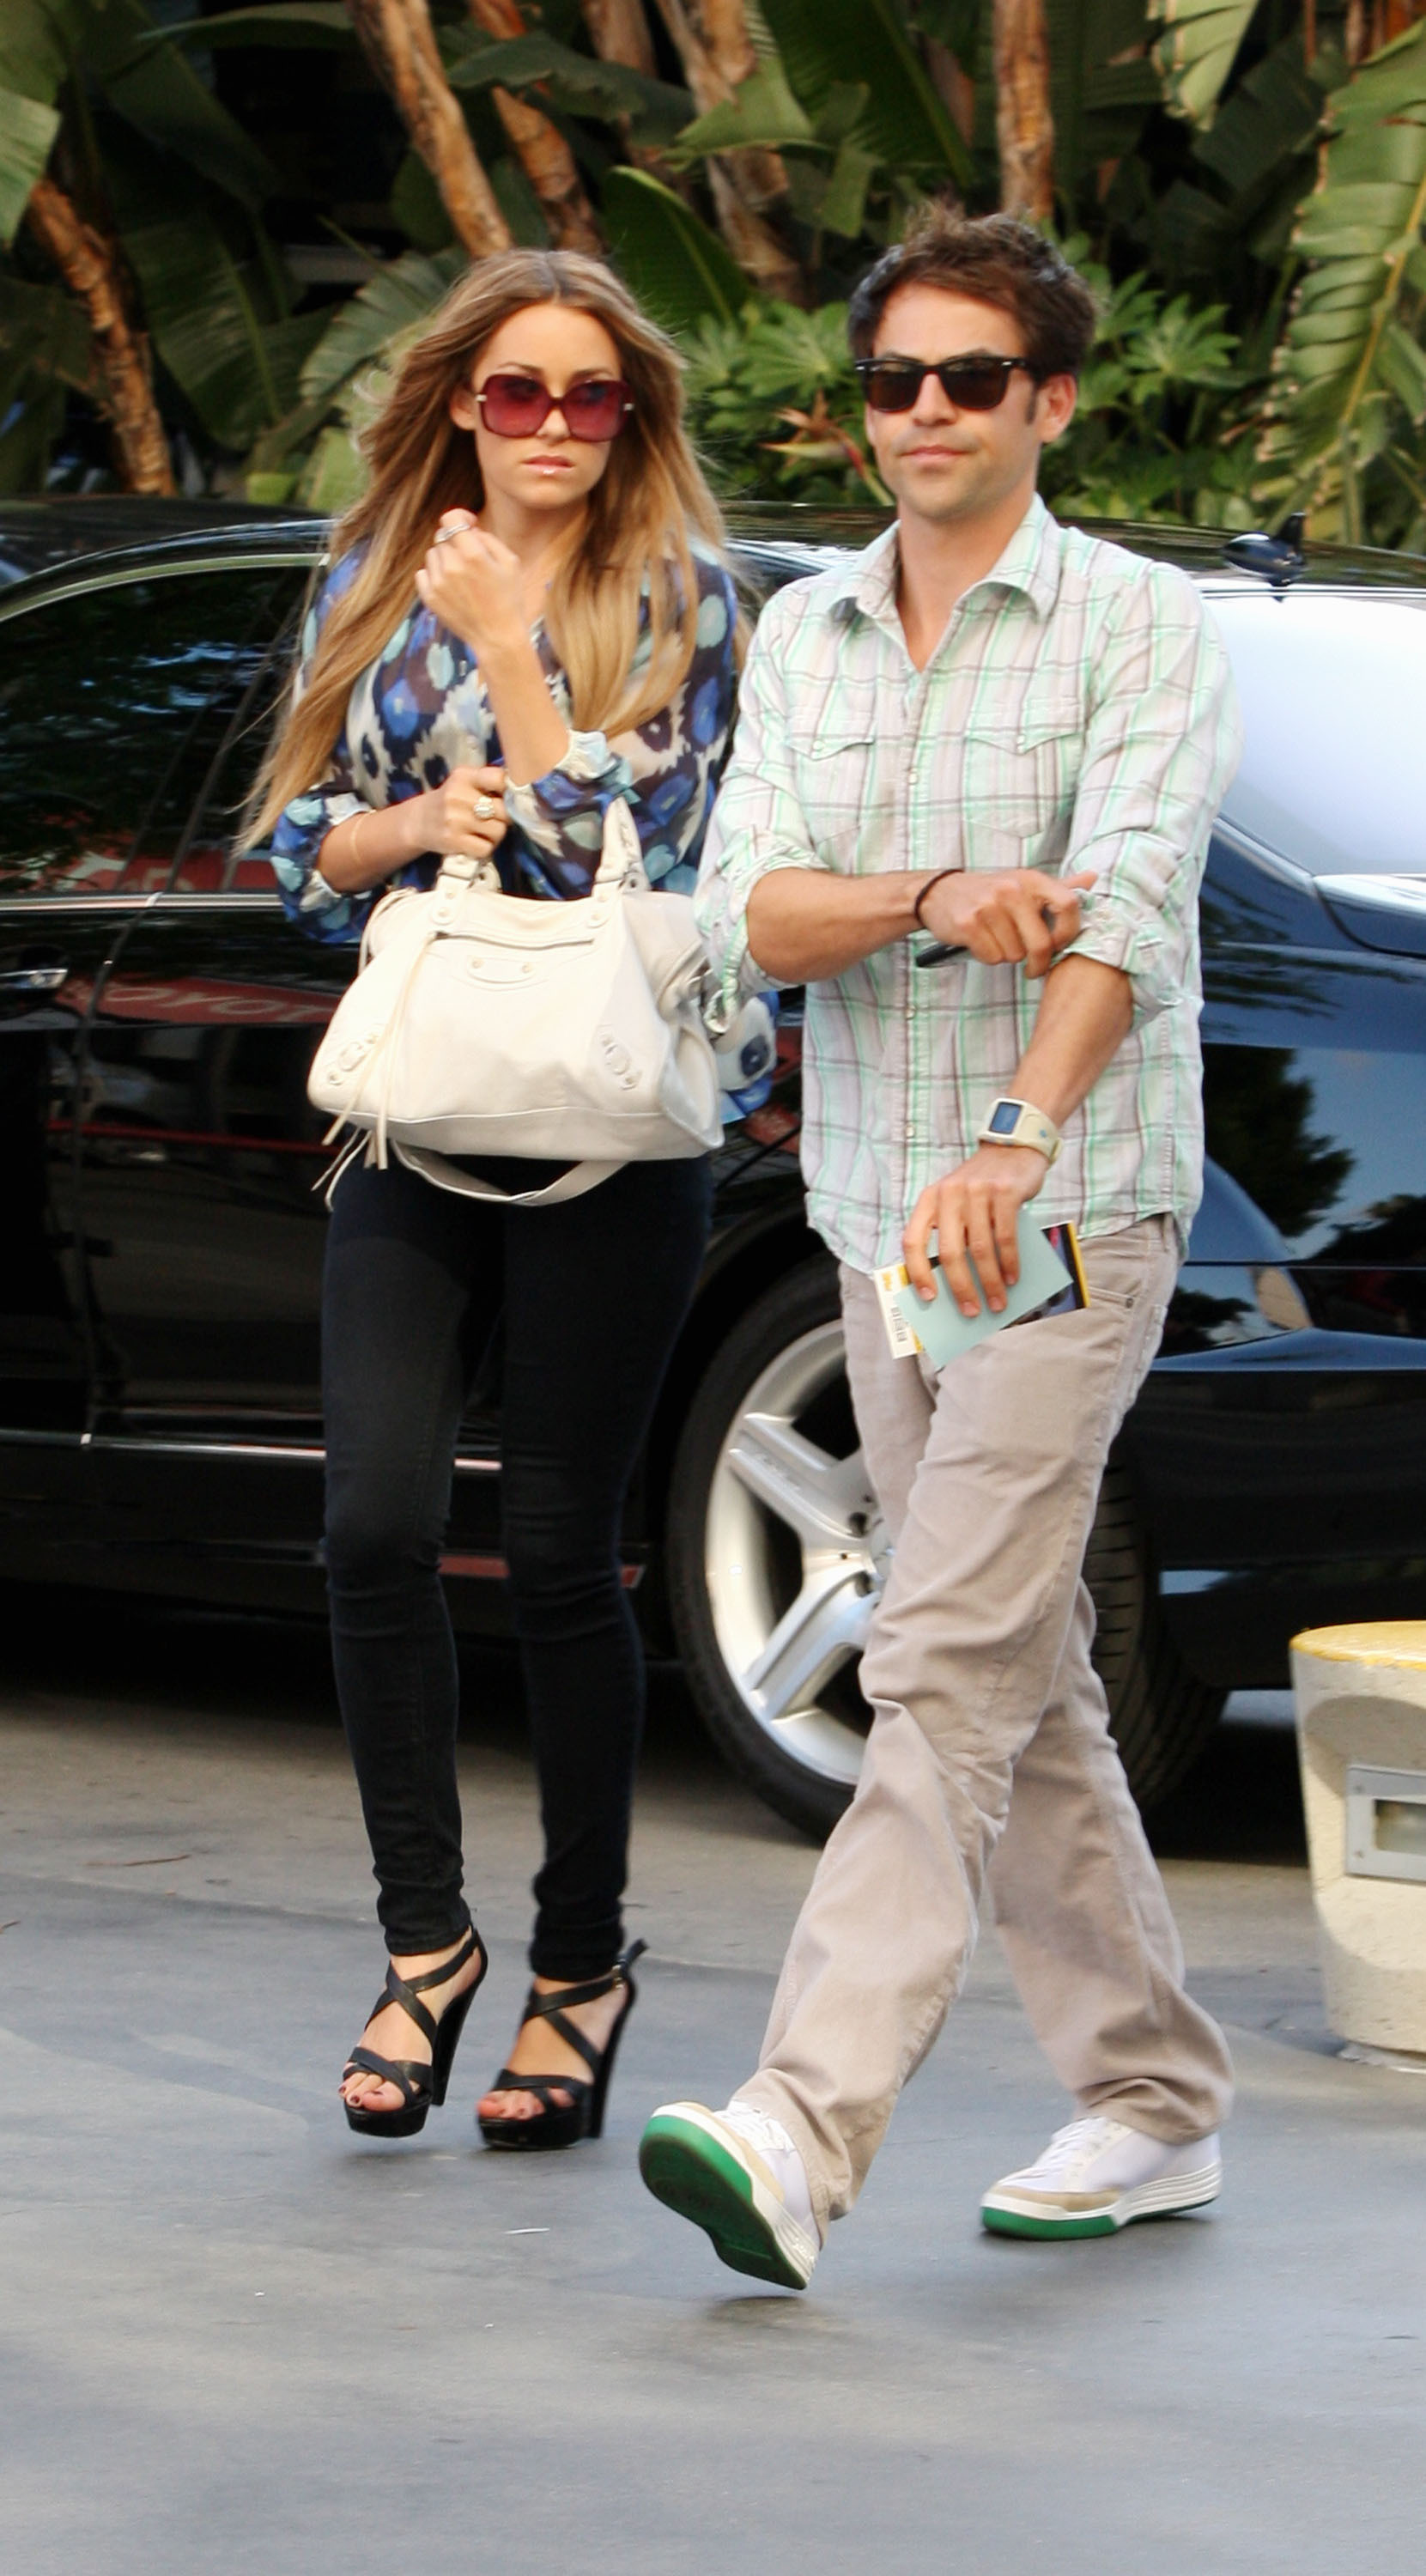 No idea who this new guy is with Lauren Conrad in July 2007, or whether he